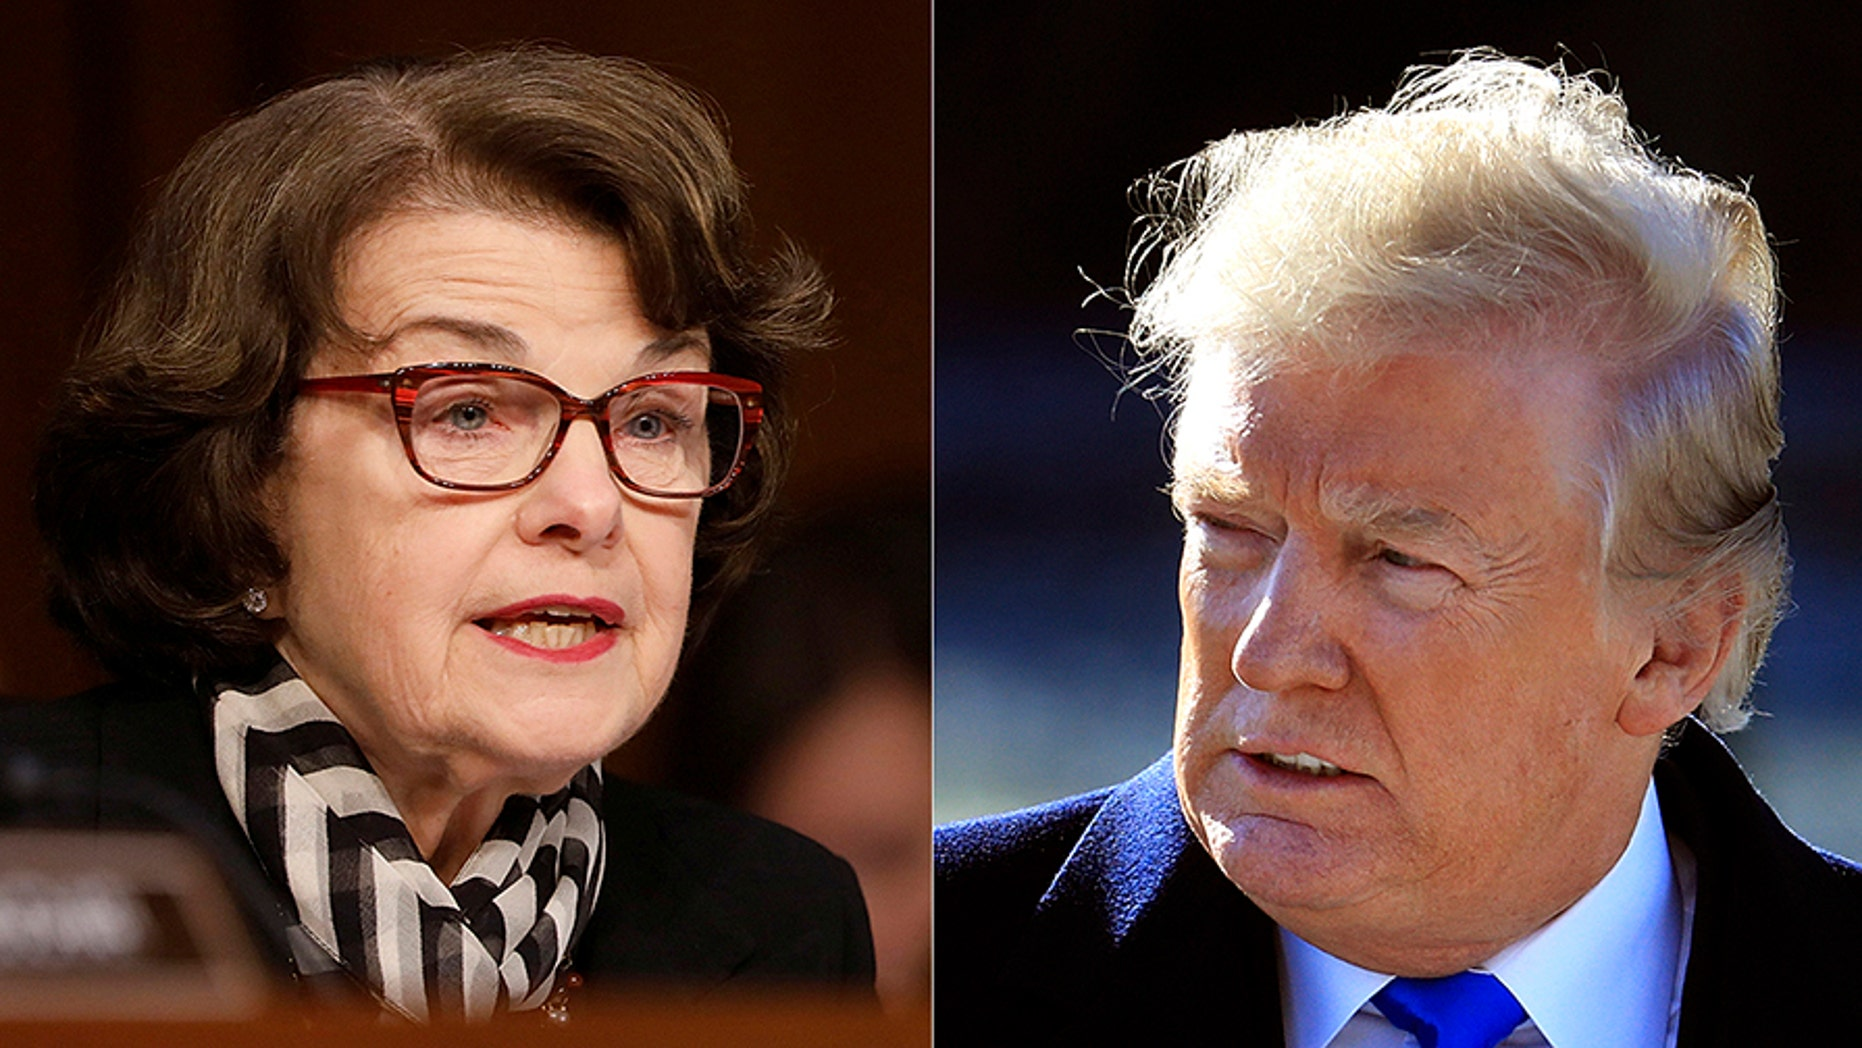 President Trump has a new nickname for Sen. Dianne Feinstein.